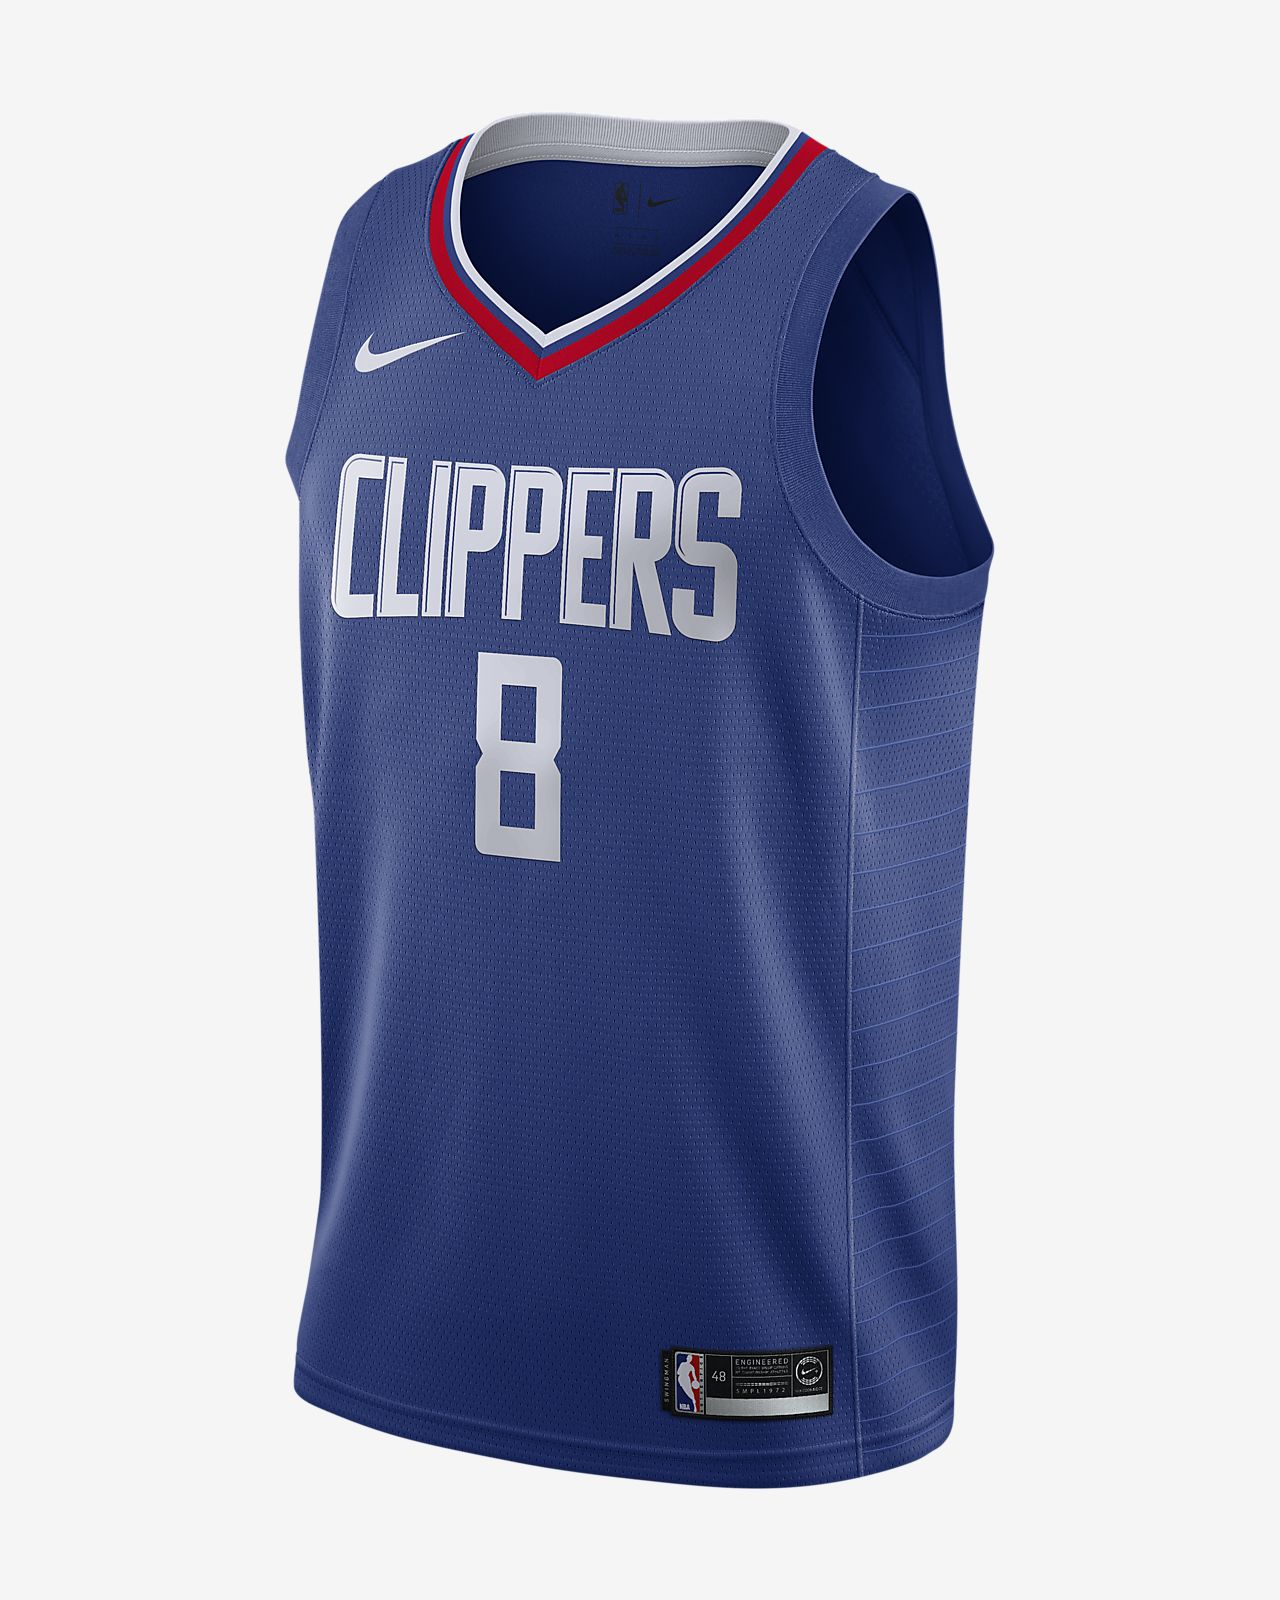 Maillot connecté Nike NBA Danilo Gallinari Icon Edition Swingman (LA Clippers) pour Homme